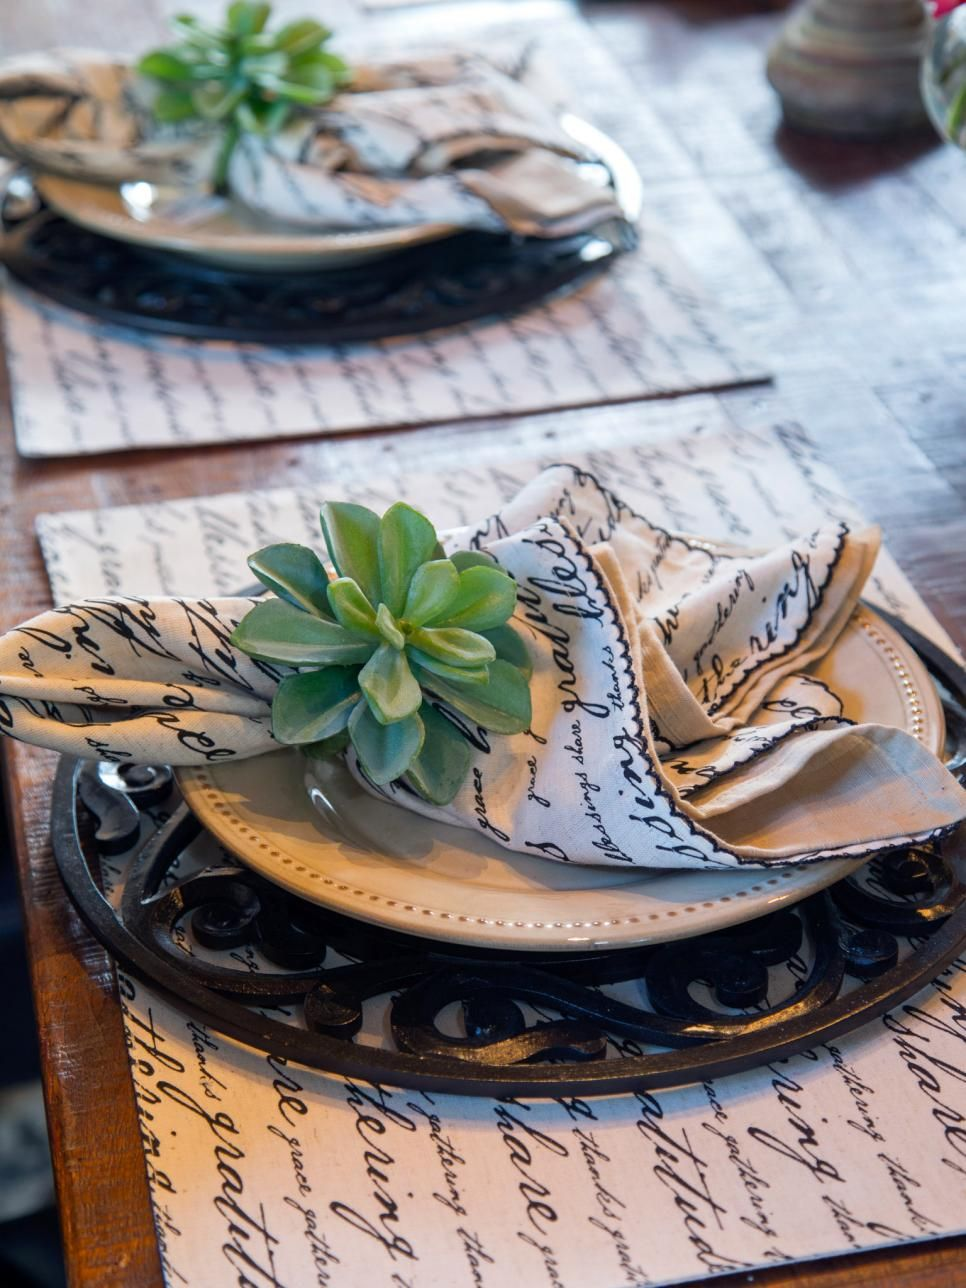 Chip and joanna gaines transform a barn into a rustic home perfect for - In The Dining Room The Rustic Wood Dining Table Is Staged With Distinctive Wrought